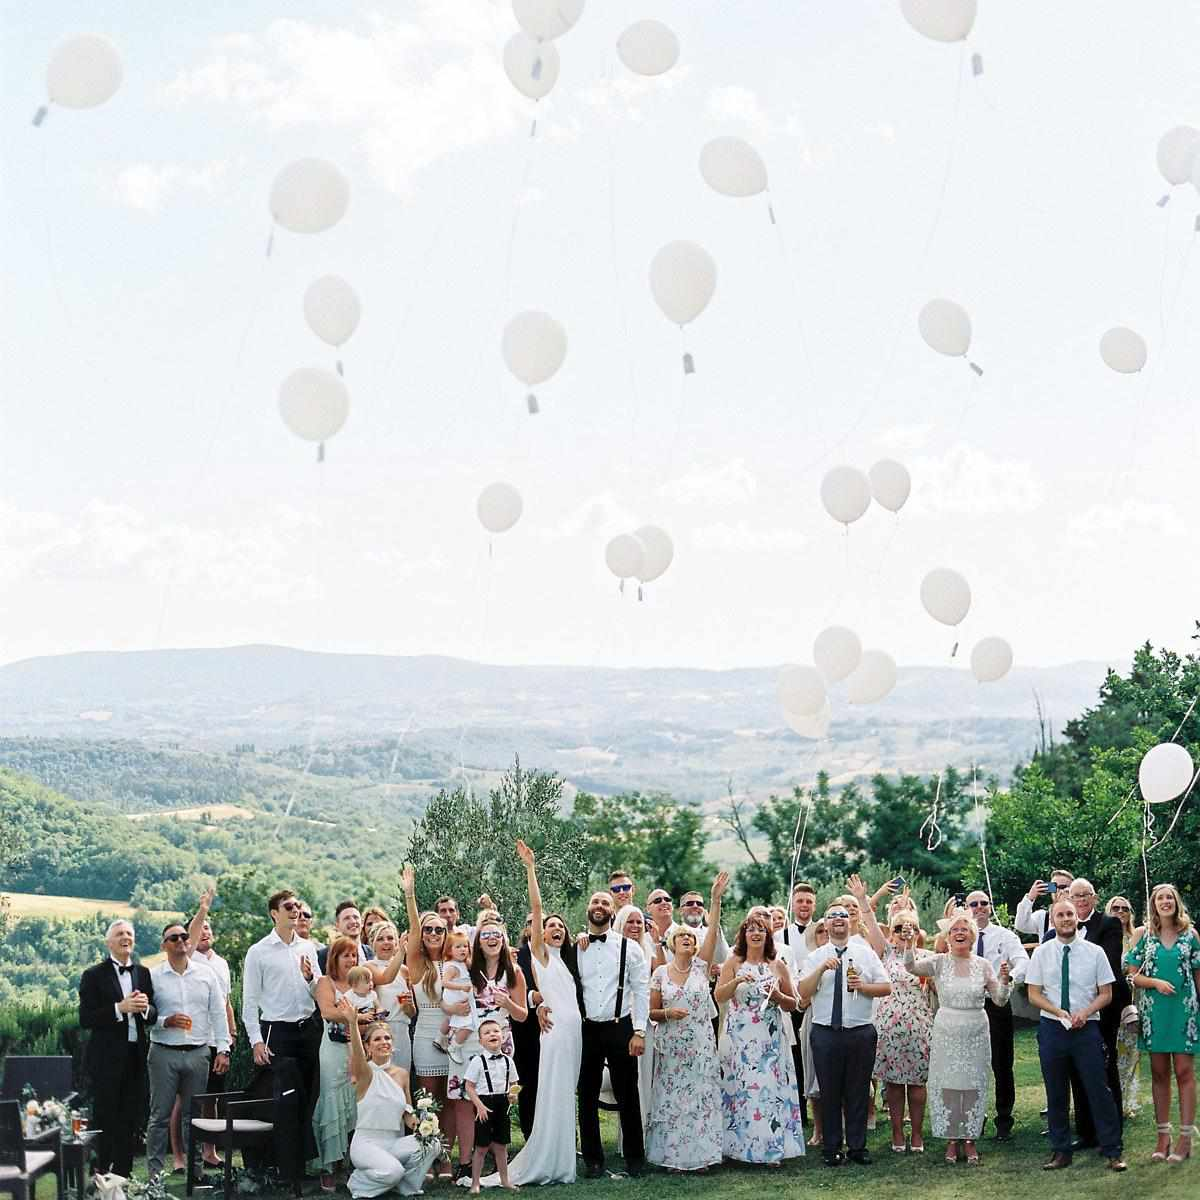 Real Weddings In Tuscany: A Fun-Filled Destination Wedding In Tuscany